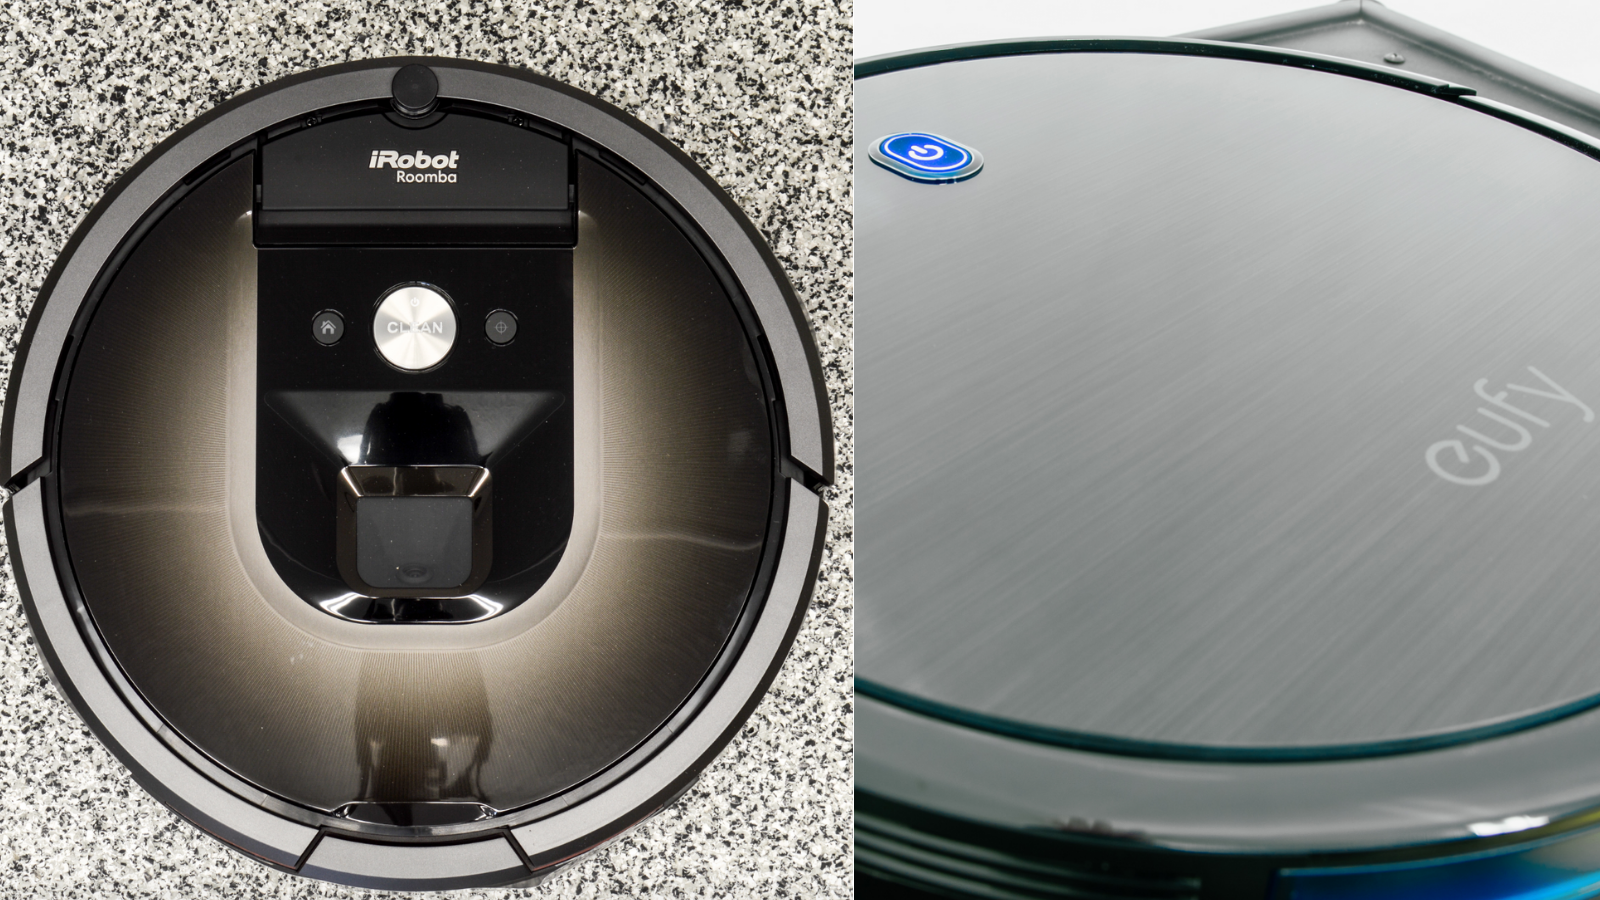 The best robot vacuums of 2018 | Nris